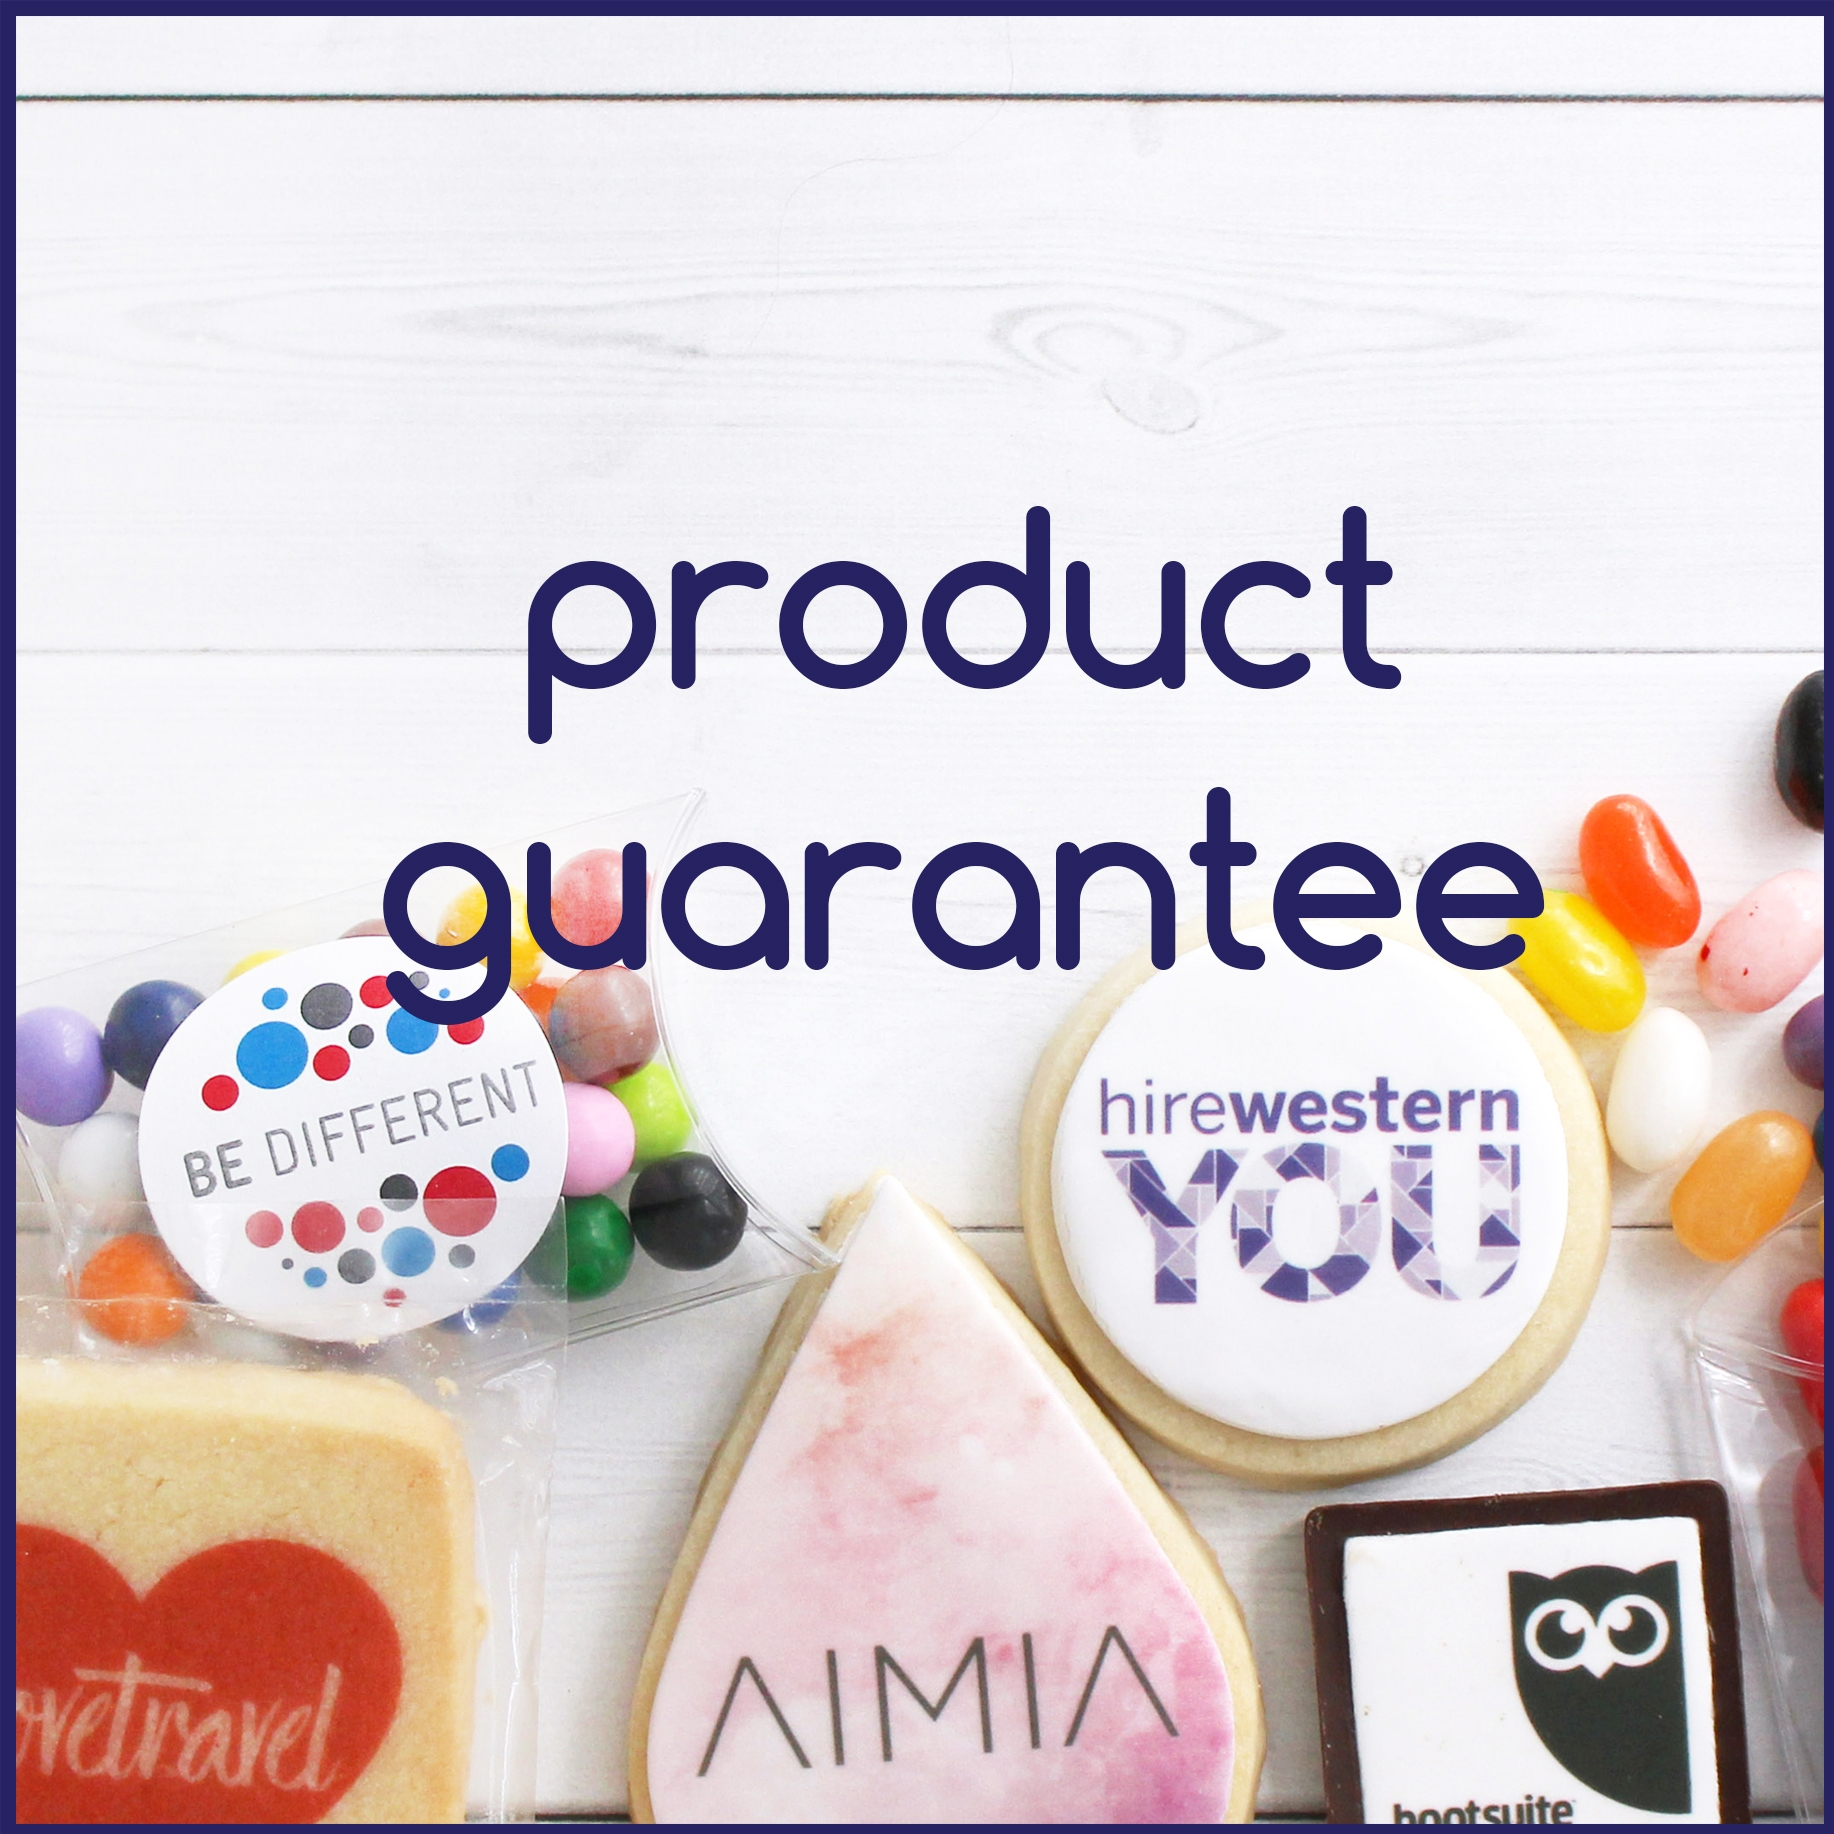 product guarantee square.jpg